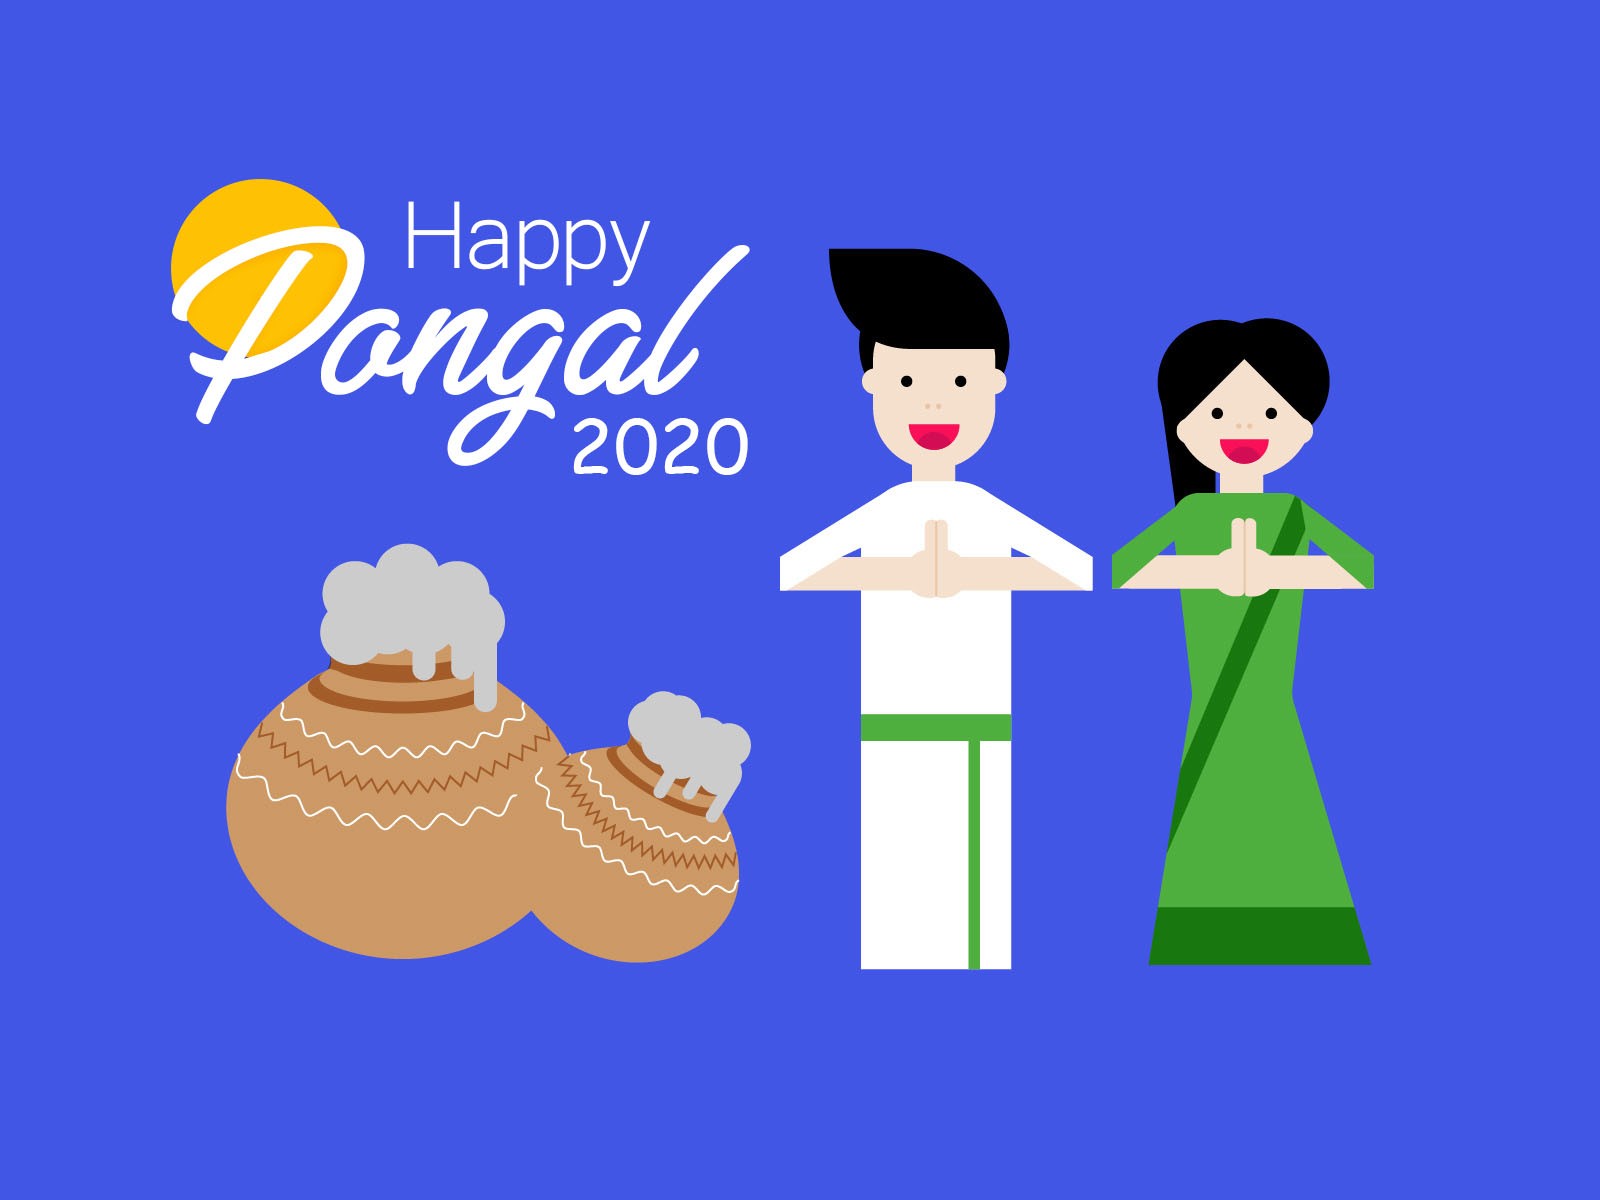 Happy Pongal wishes 2020 Greeting image Festival of Tamil Nadu South India